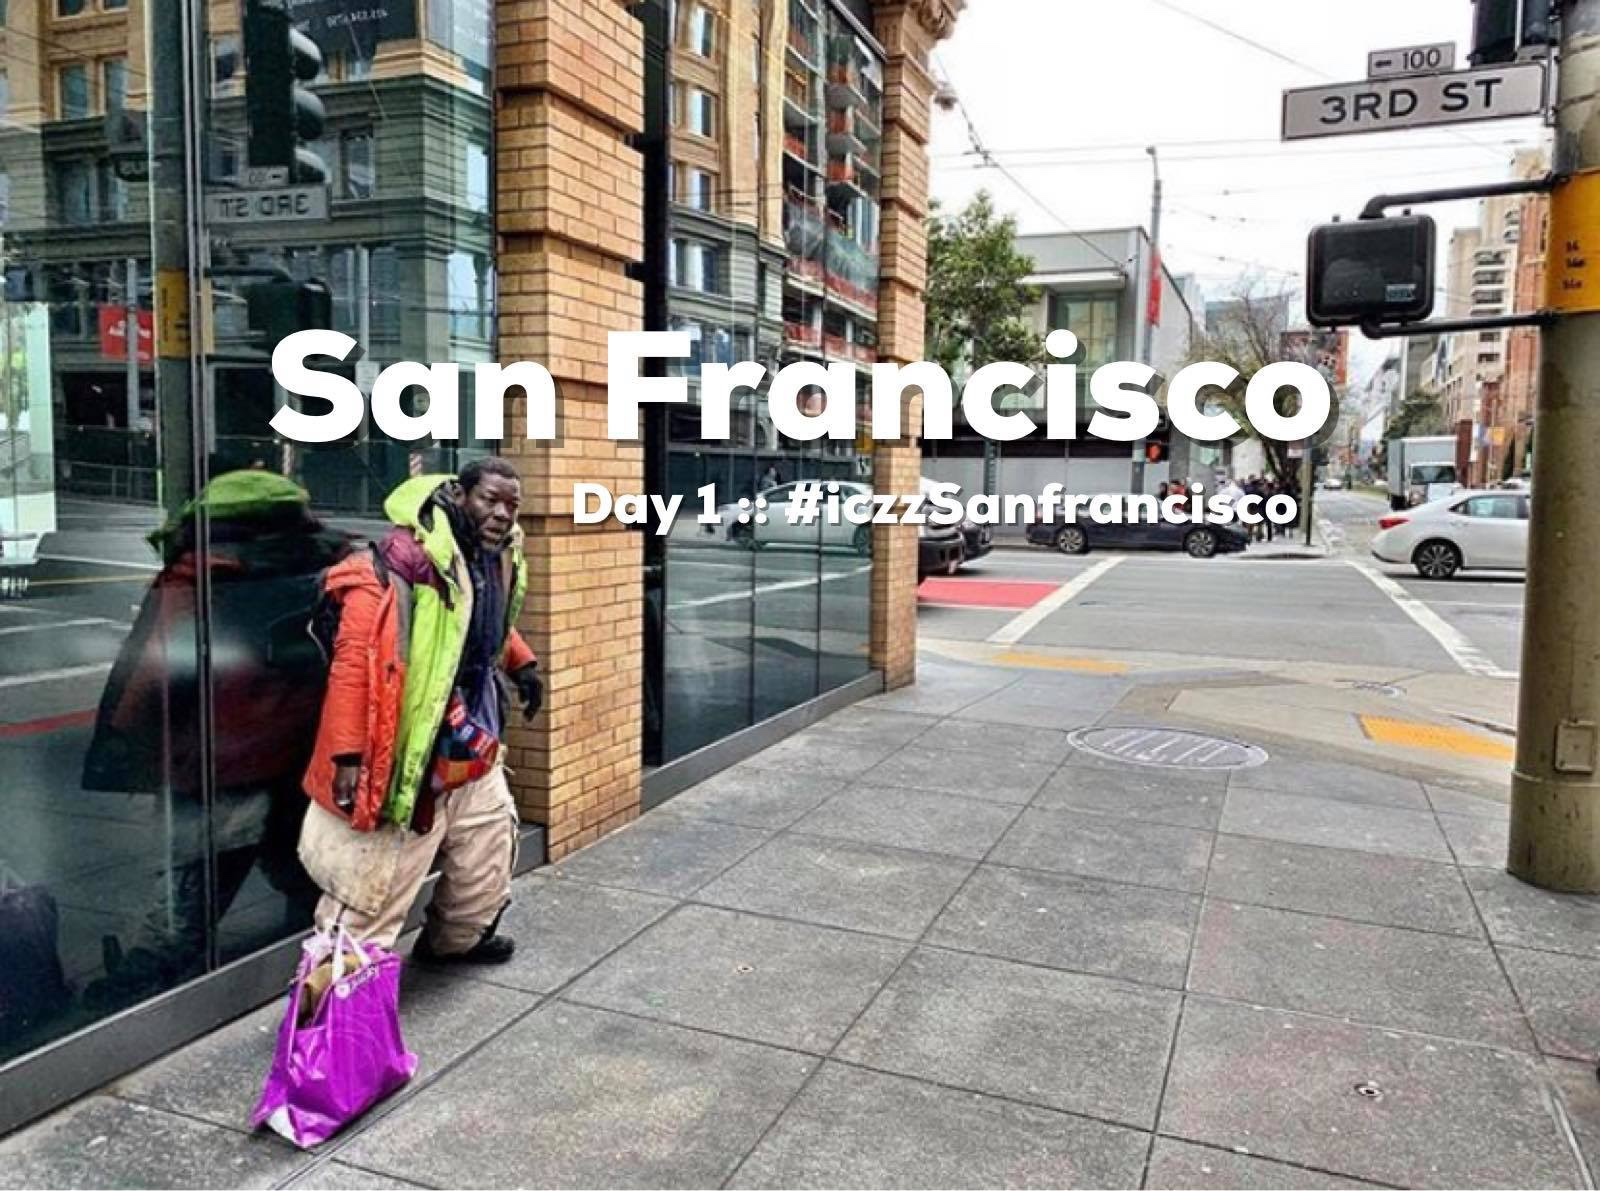 รีวิวเที่ยว San Francisco USA :: San Francisco USA 101 Top things to do in San Francisco USA EP.1/6 @iczz #iczzSanFrancisco